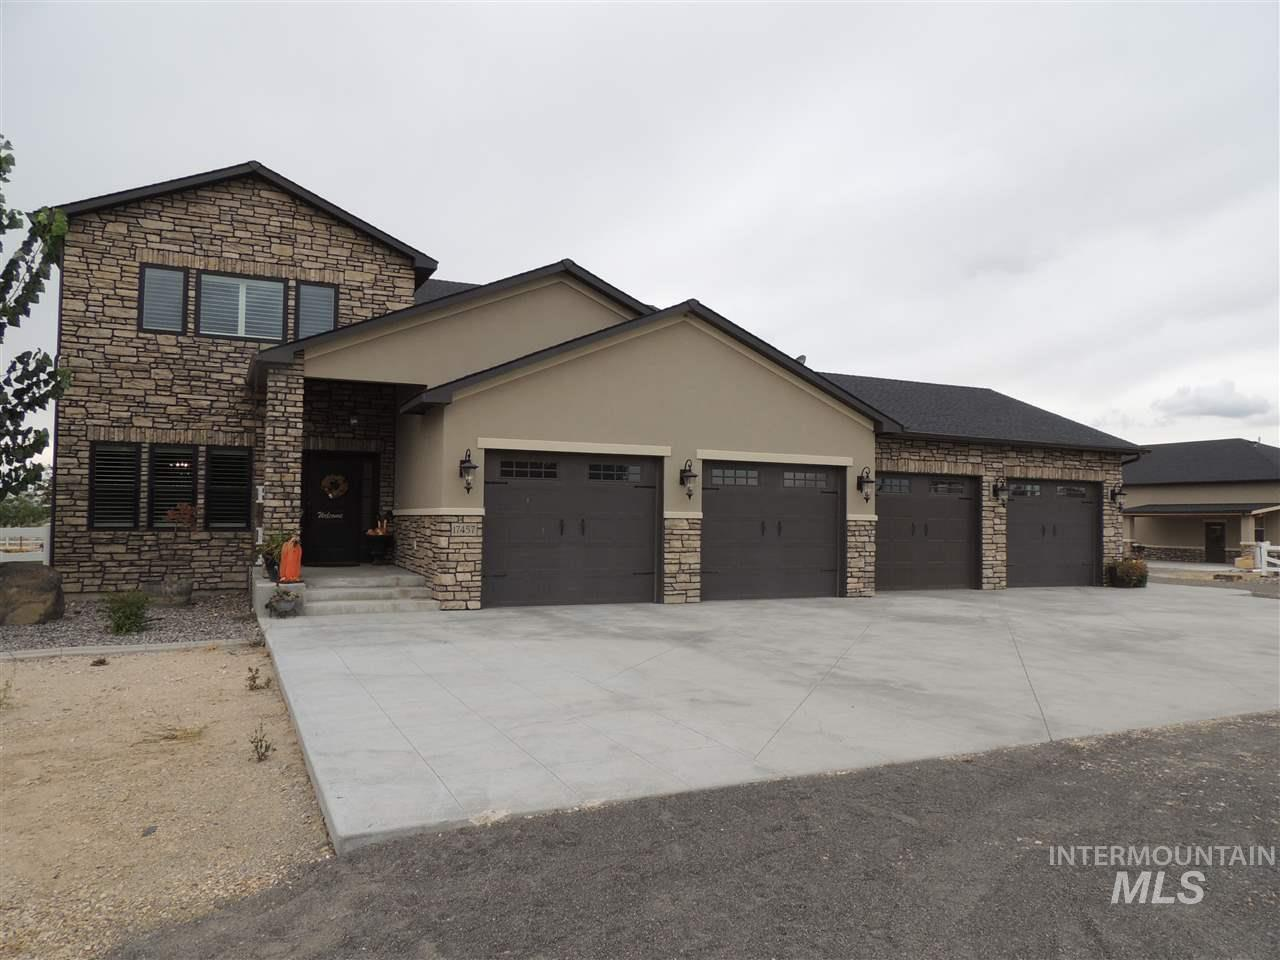 17457 Sunnydale Pl, Caldwell, Idaho 83607, 7 Bedrooms, 4.5 Bathrooms, Residential For Sale, Price $1,100,000, 98746178